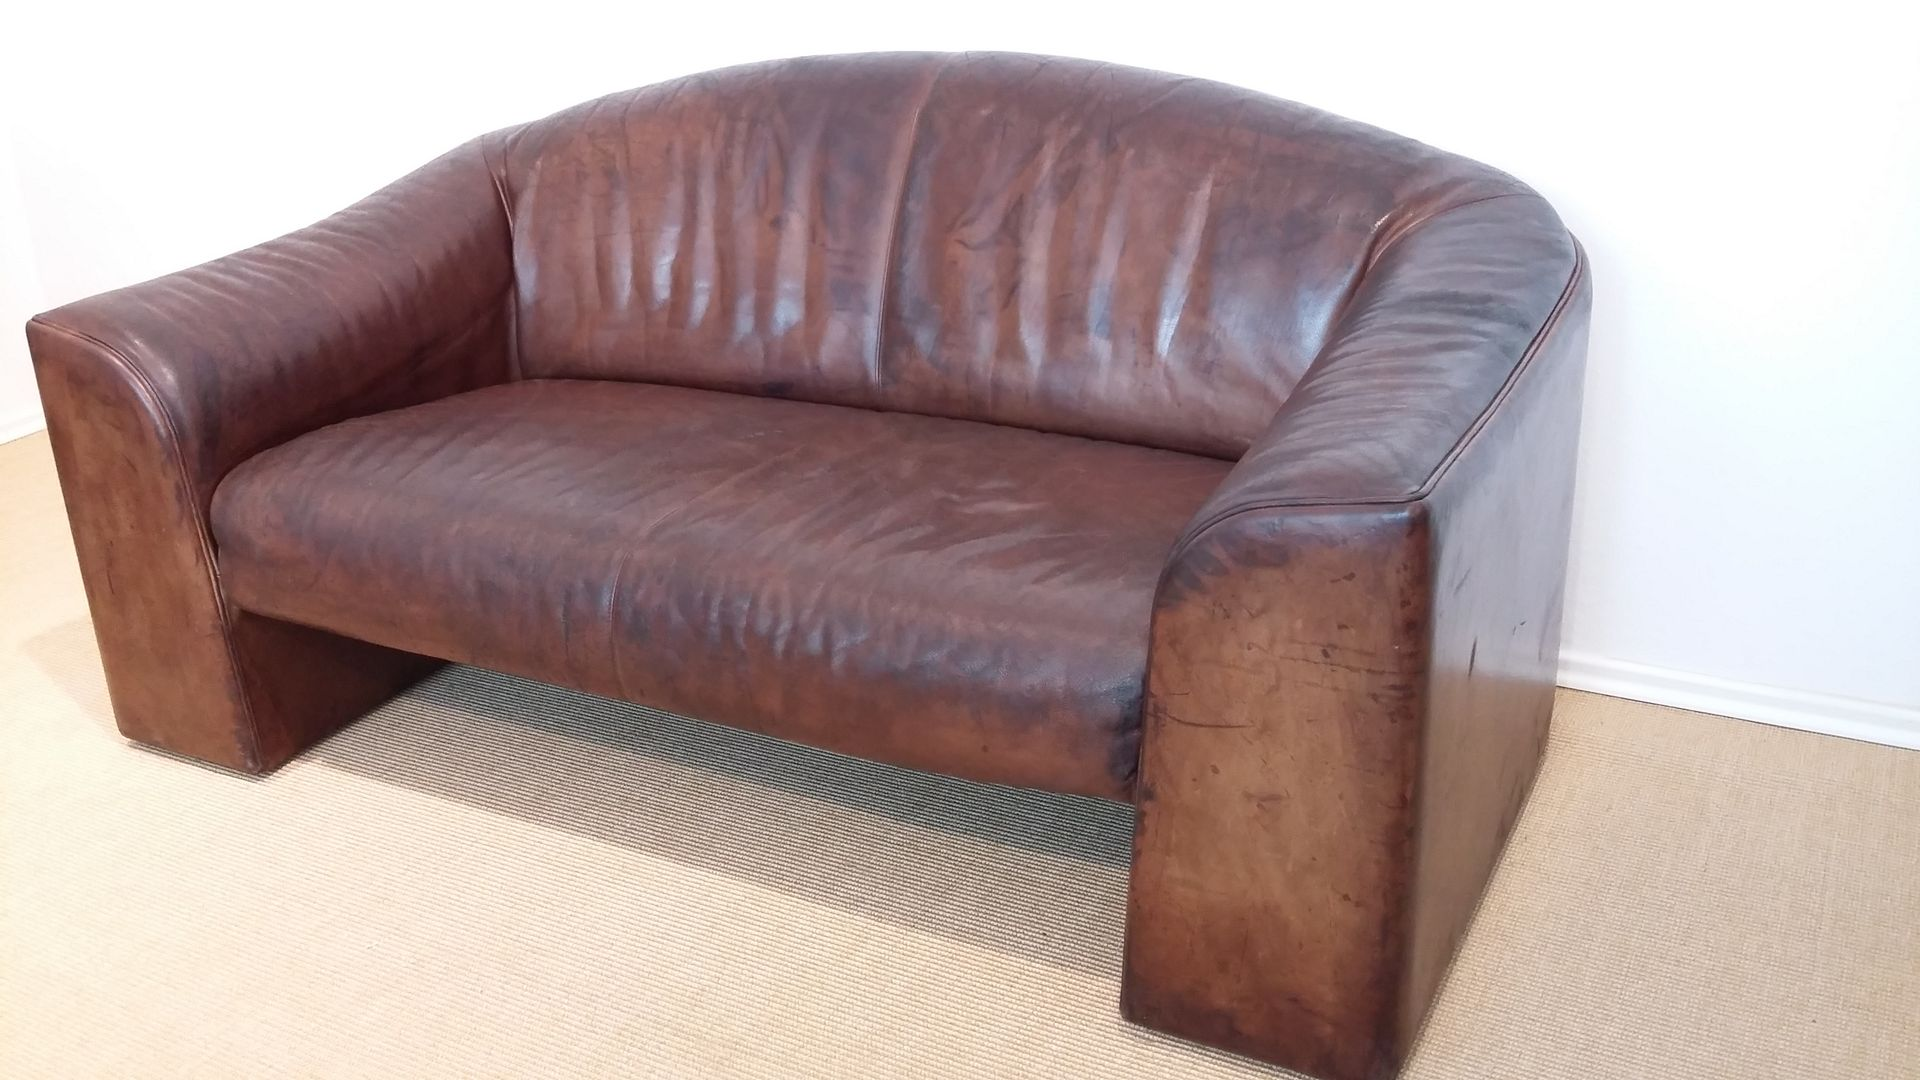 Brown Vintage 2 Seater Leather Sofa From De Sede 1970s For Sale At Pamono